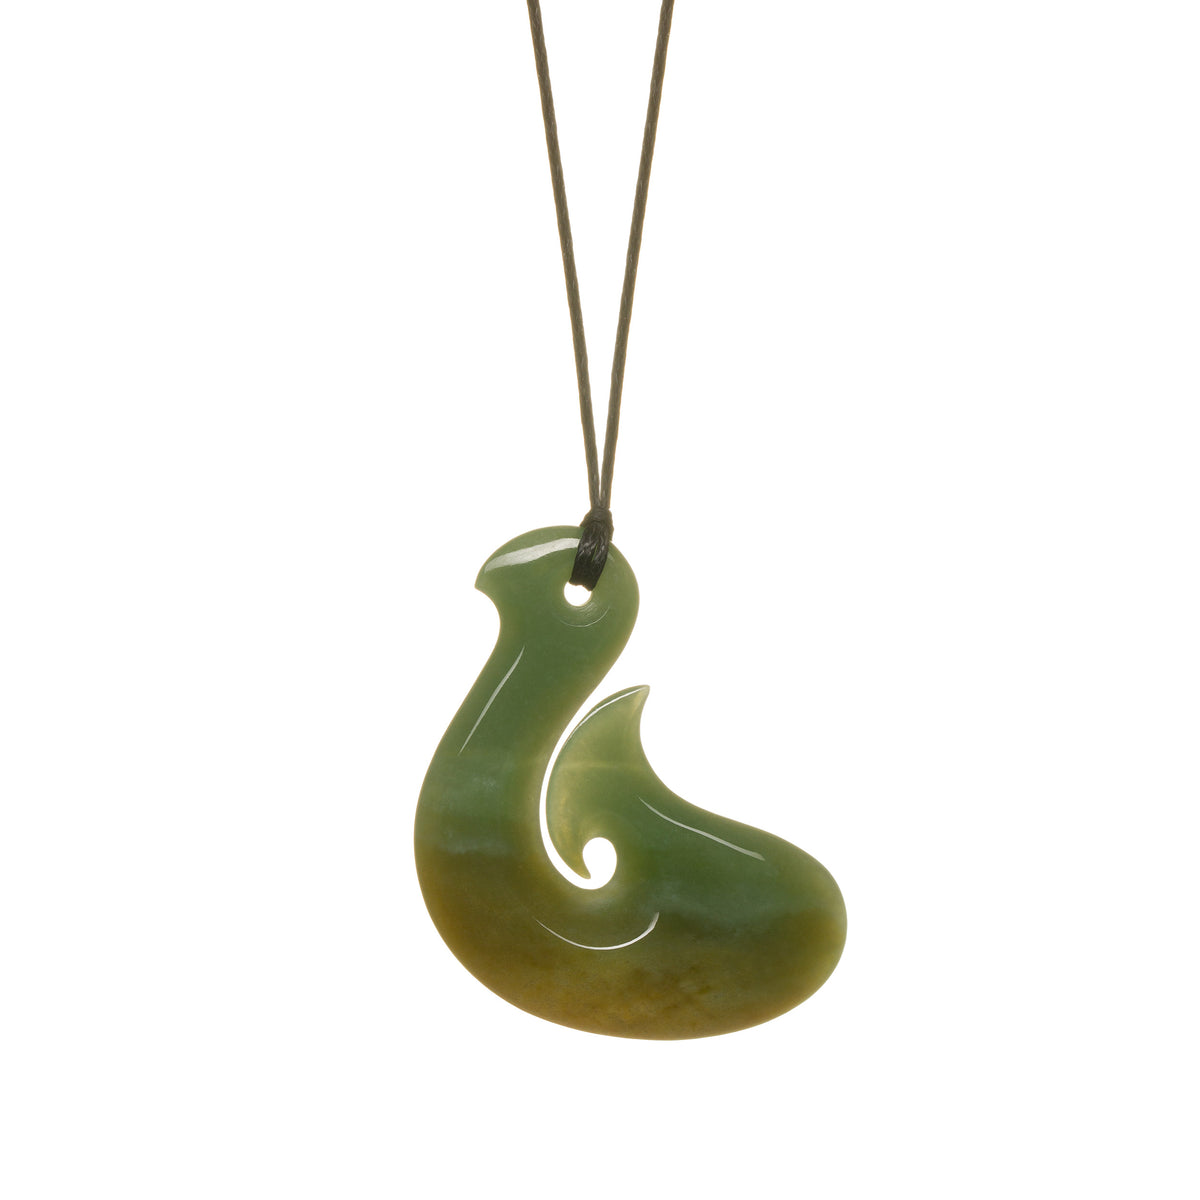 45mm x 32mm / New Zealand Pounamu // LU-H5-468-WIP-1